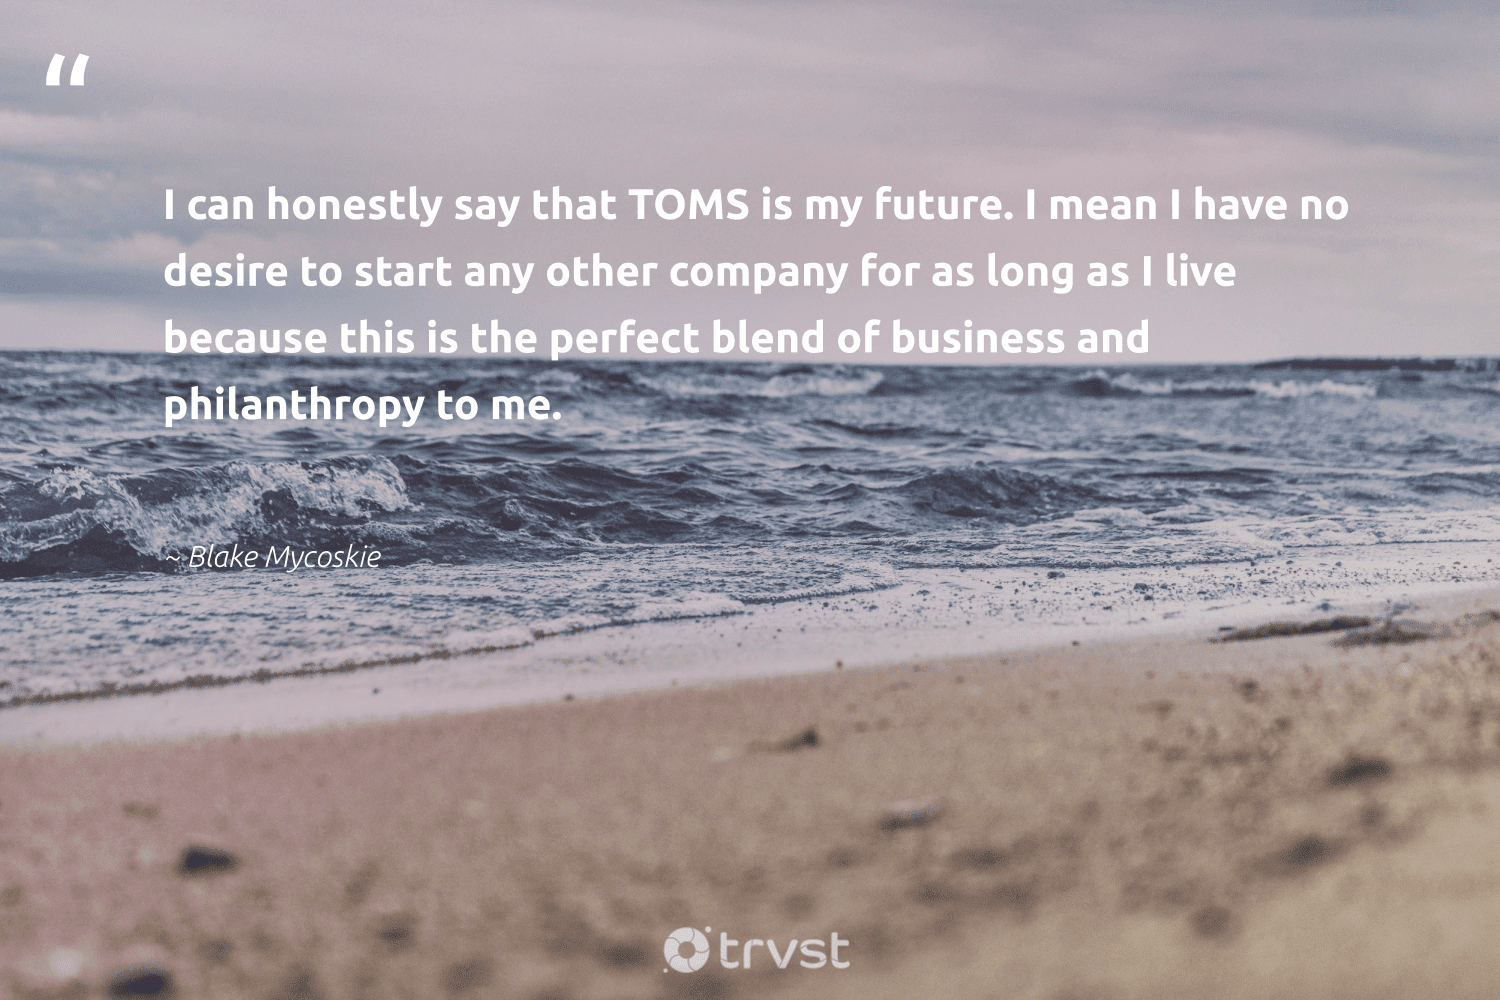 """""""I can honestly say that TOMS is my future. I mean I have no desire to start any other company for as long as I live because this is the perfect blend of business and philanthropy to me.""""  - Blake Mycoskie #trvst #quotes #philanthropy #philanthropic #itscooltobekind #changemakers #dogood #togetherwecan #giveforthefuture #dotherightthing #changetheworld #dosomething"""